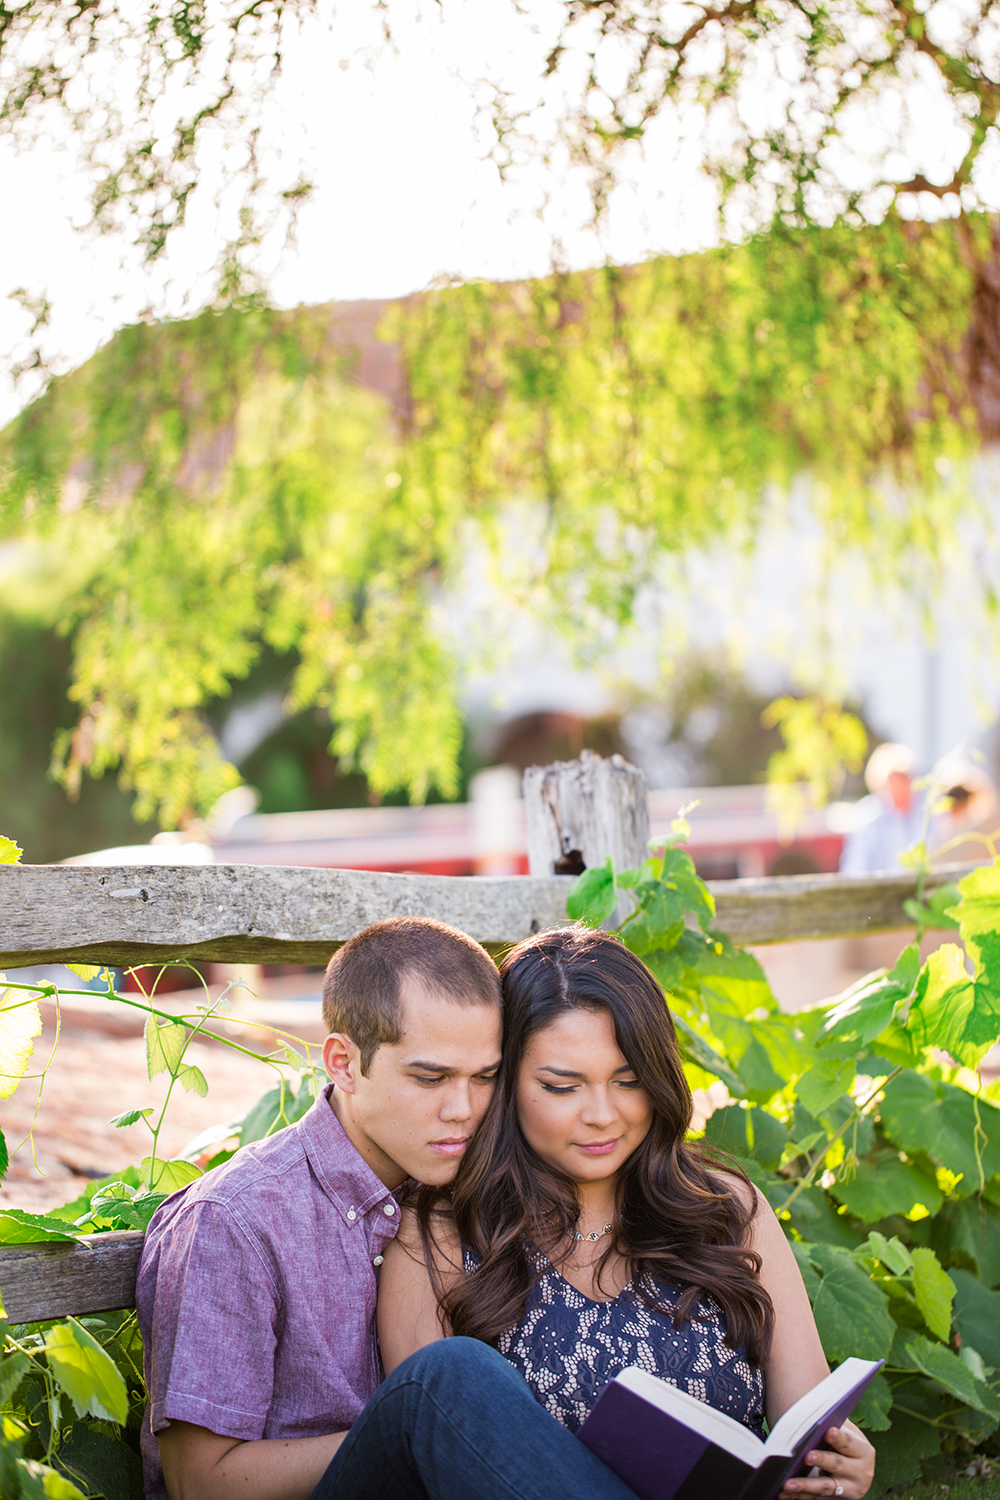 SabrinaAndrewEngagement_Website_13_1500.jpg